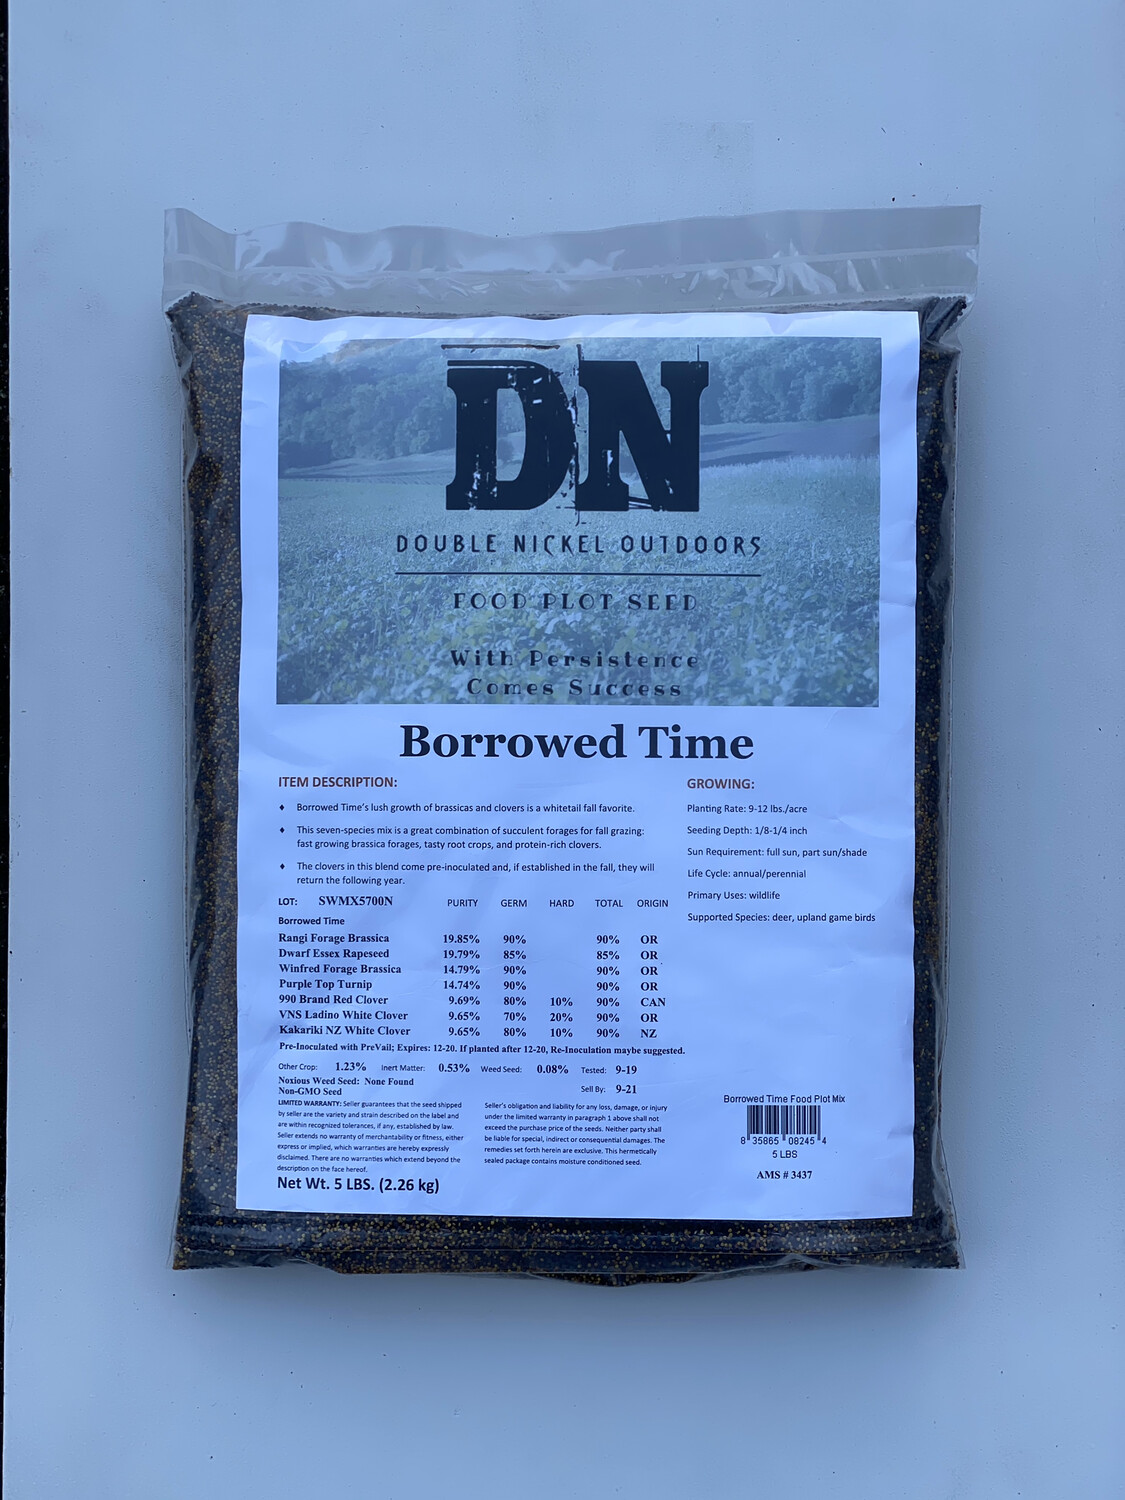 Borrowed Time Seed 25lb Bag